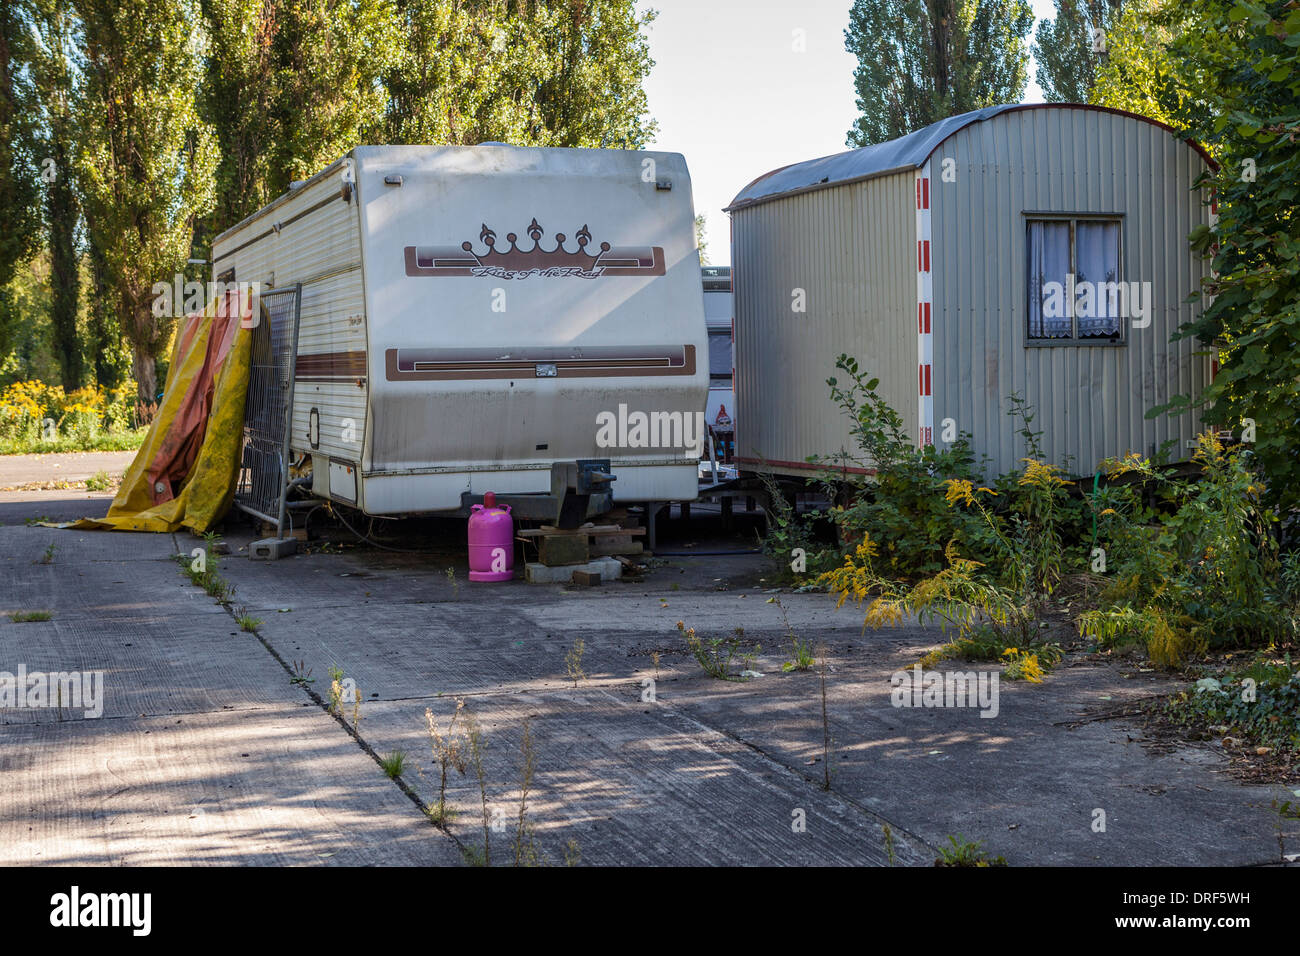 Old caravan and trailer - accommodation at the abandoned, derelict, disused amusement park, Spreepark, Planterwald, Ber;ln - Stock Image